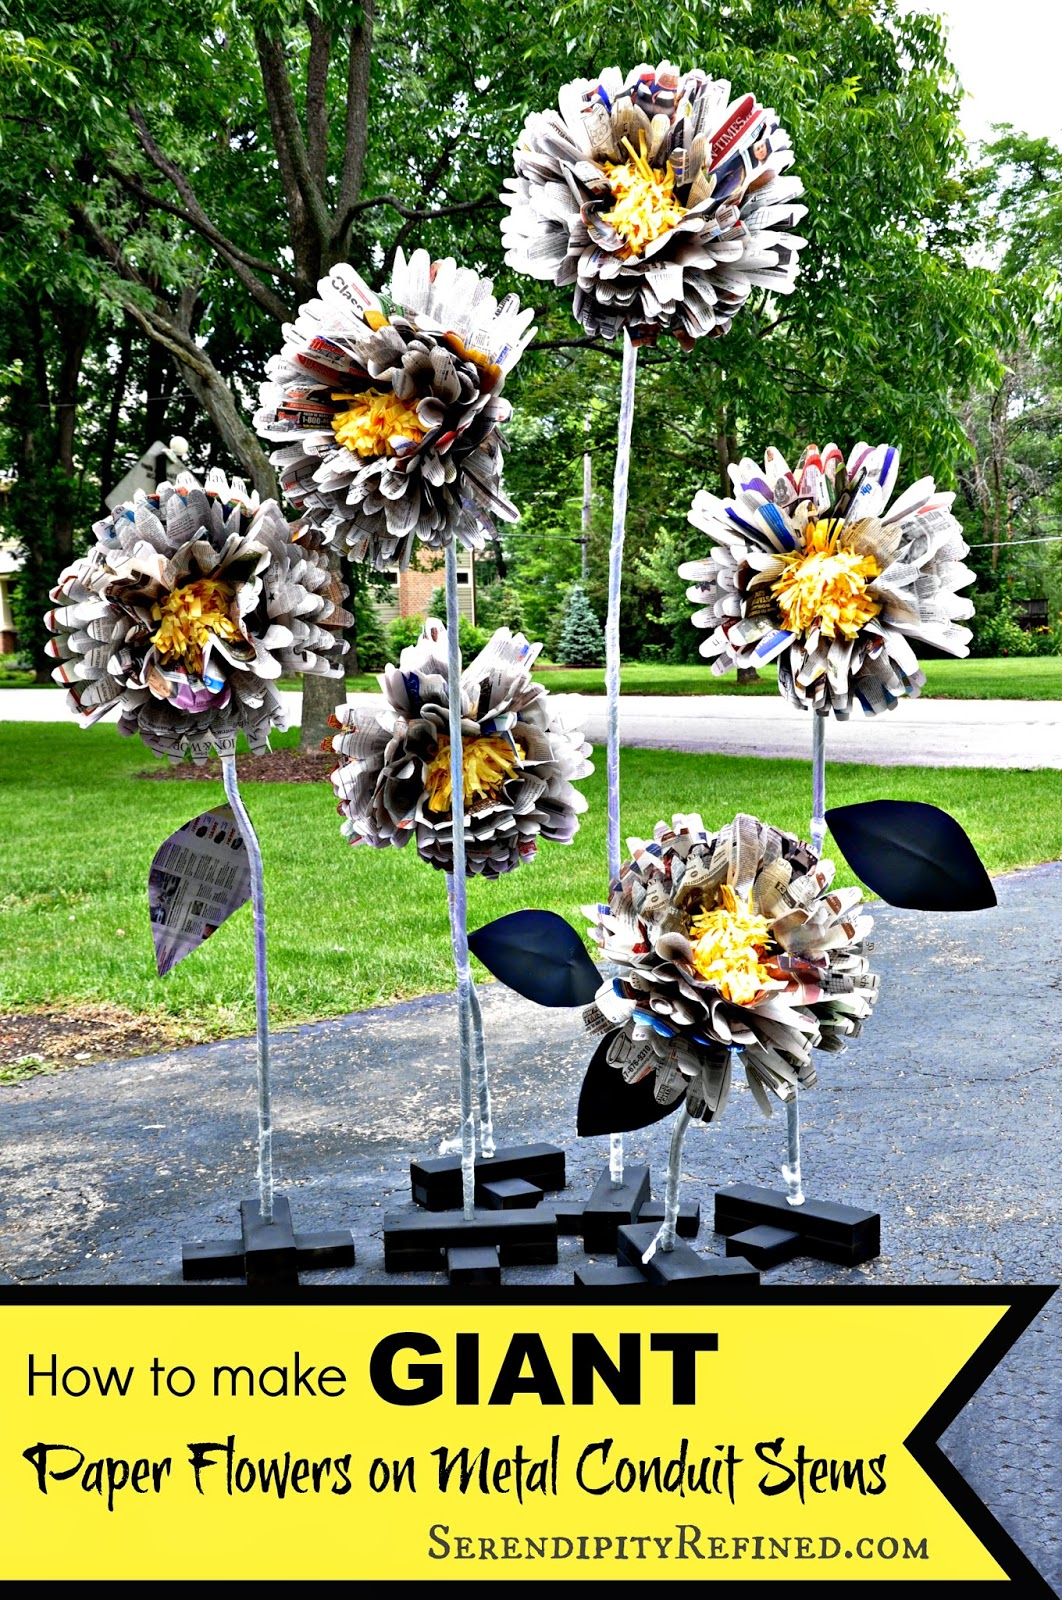 Making paper flowers with cricut httpserendipityrefined201407diy giant free standing paper flowersml izmirmasajfo